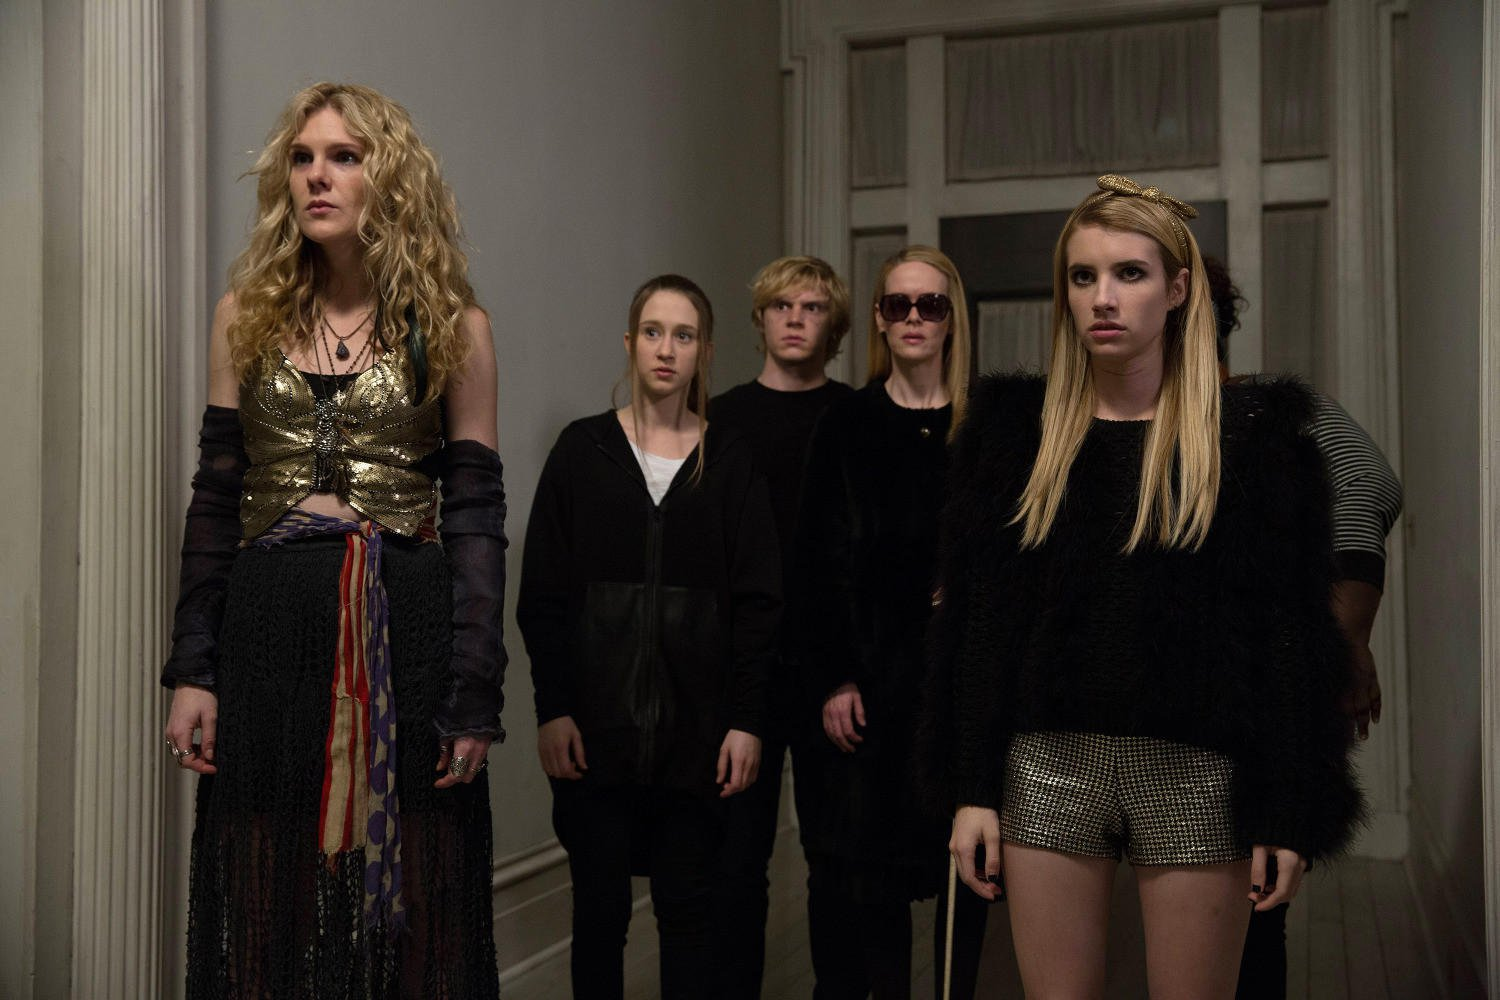 American Horror Story S8 will be a Murder House/Coven crossover